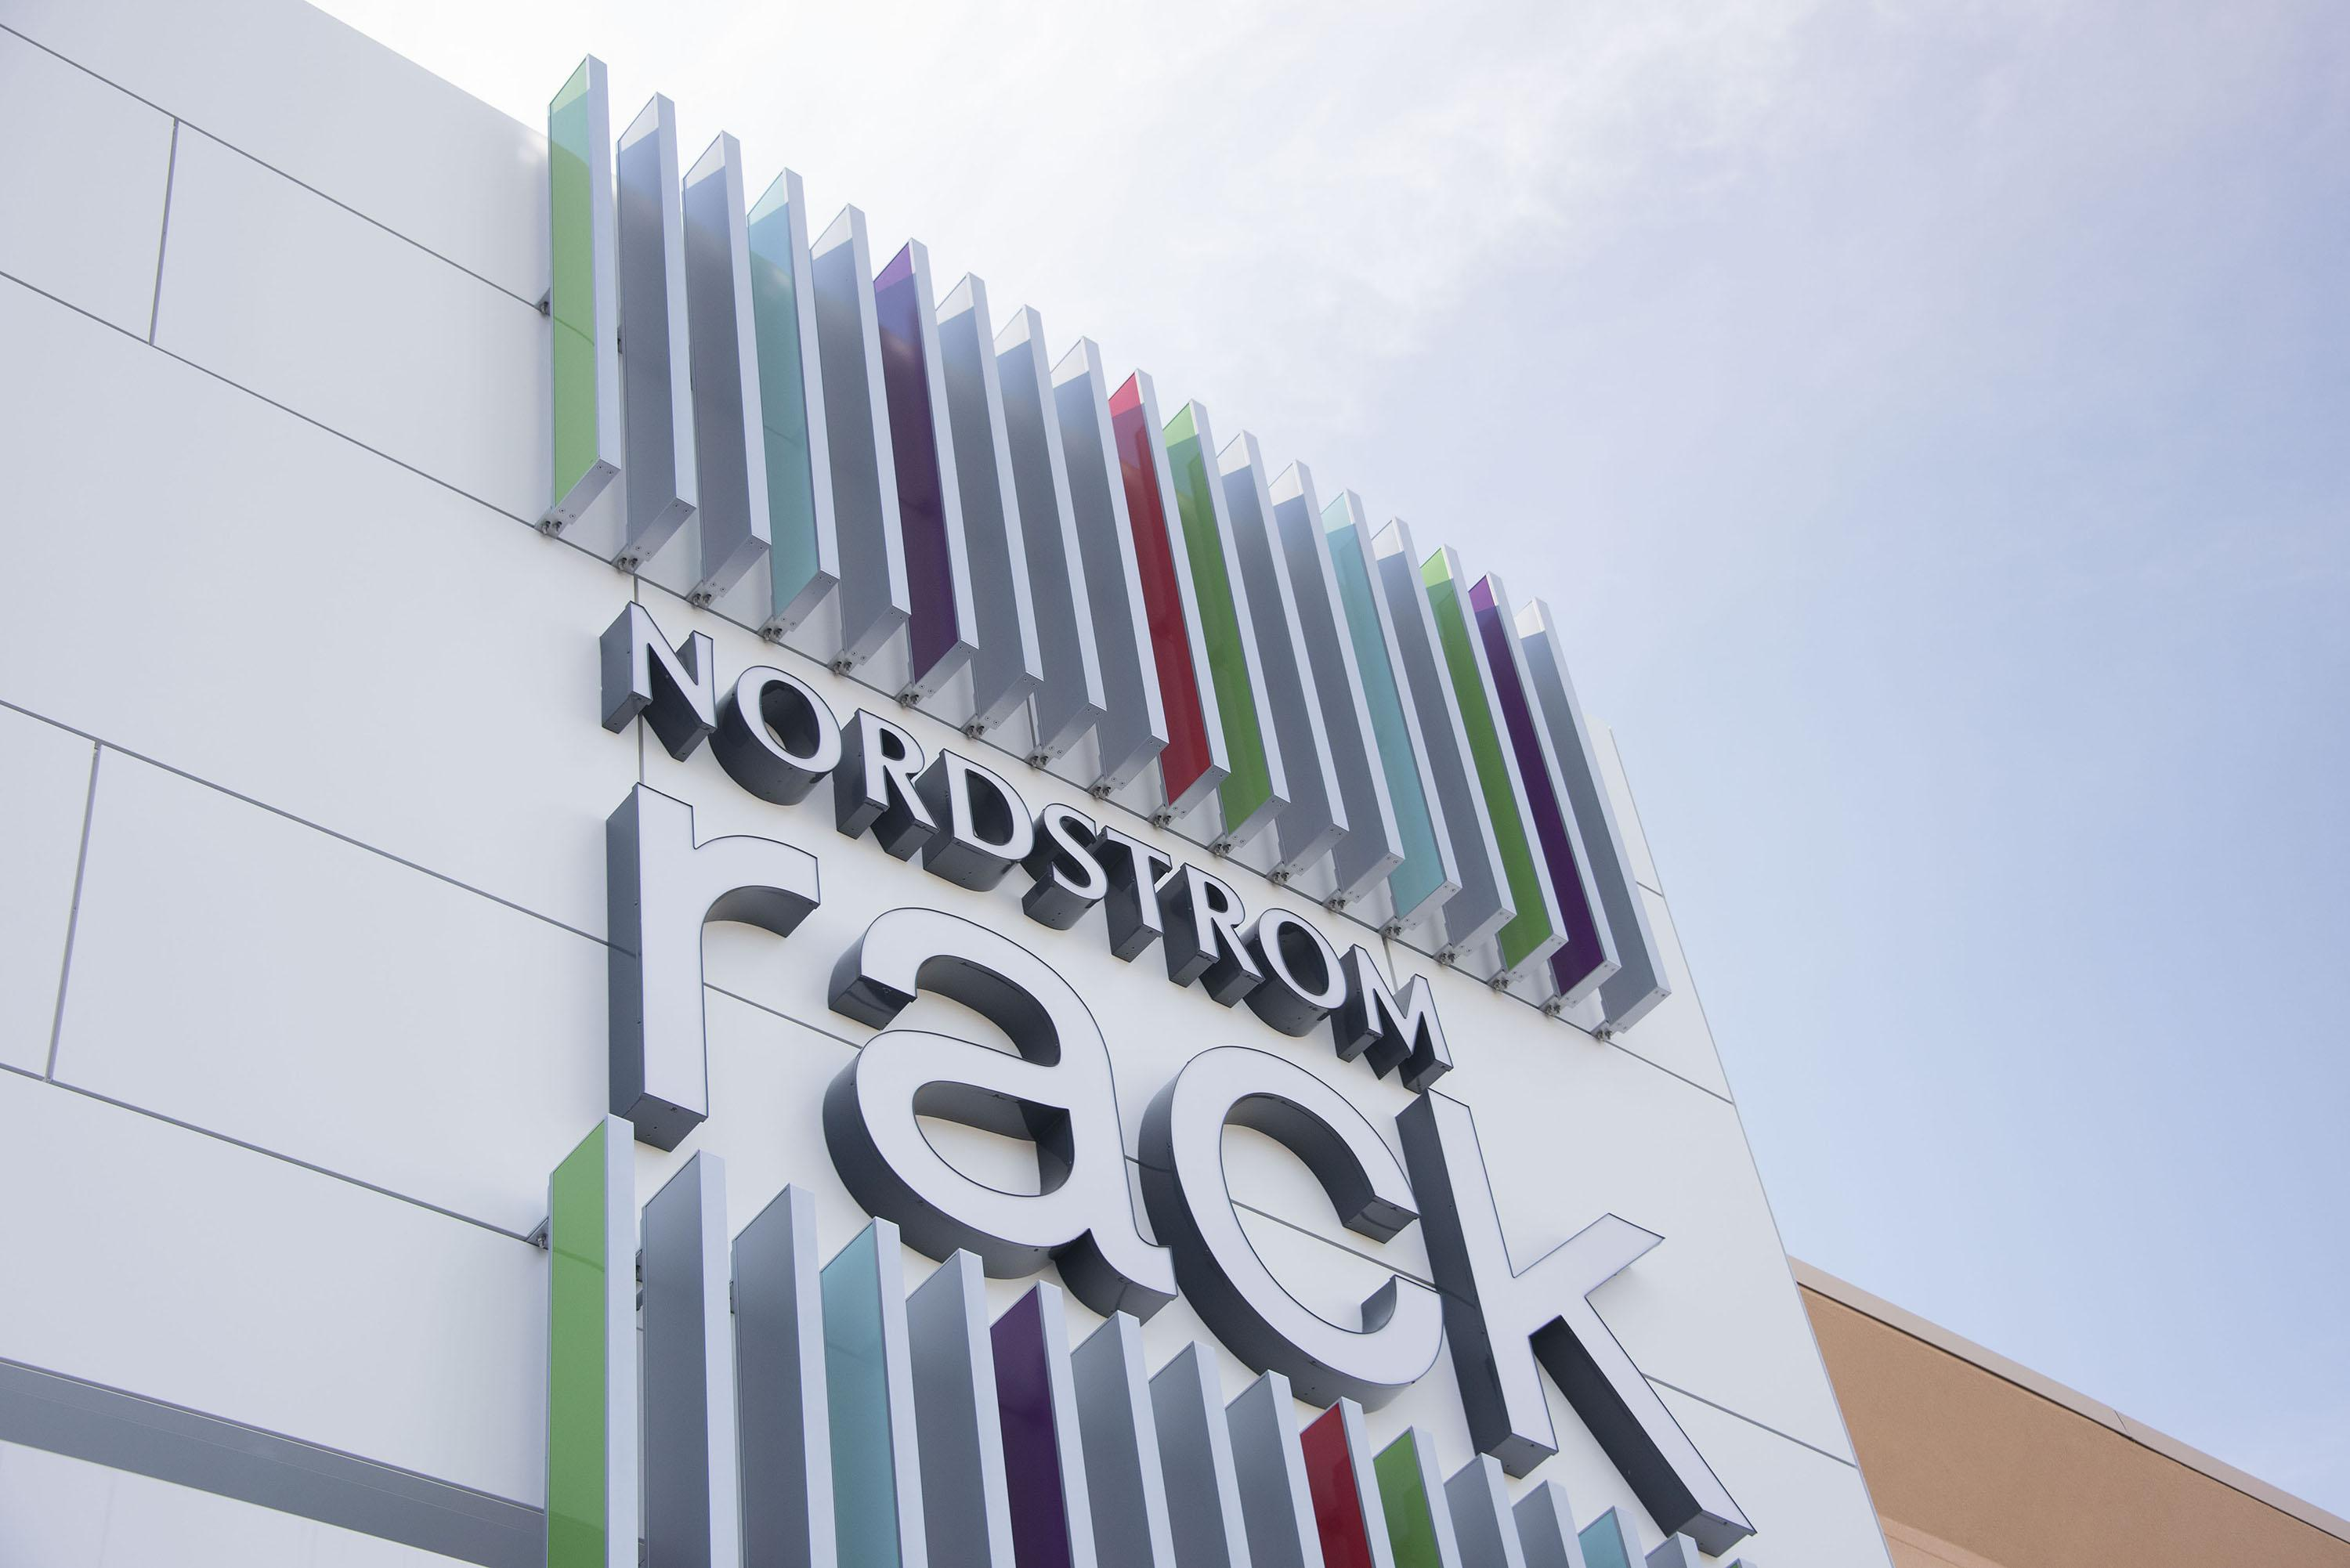 Nordstrom Rack president apologizes to three black men wrongly accused of theft